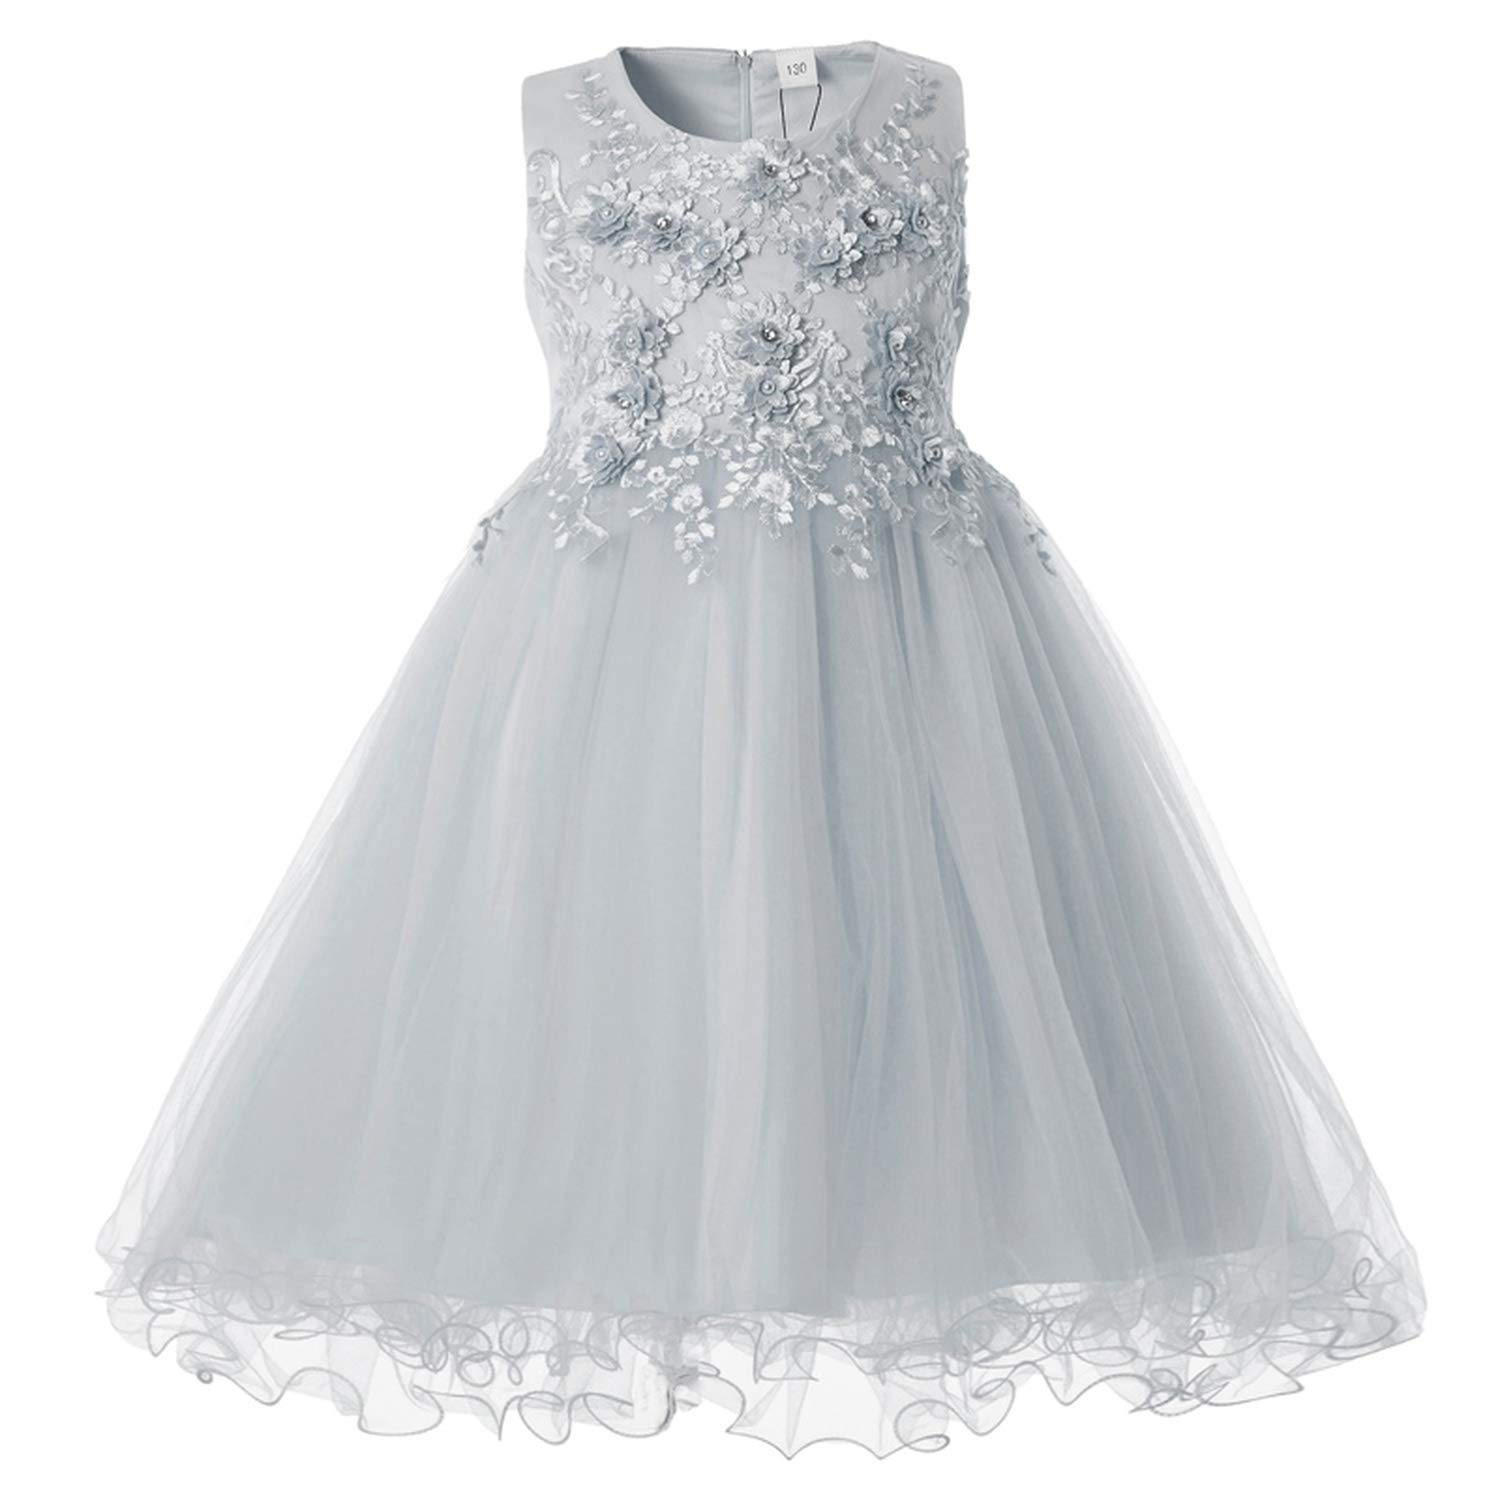 26fd57fc580 Amazon.com  Flower Girls Dress Wedding Party Dresses for Kids Pearls Formal  Ball Gown 2018 Evening Baby Outfits Tulle Girl Frocks